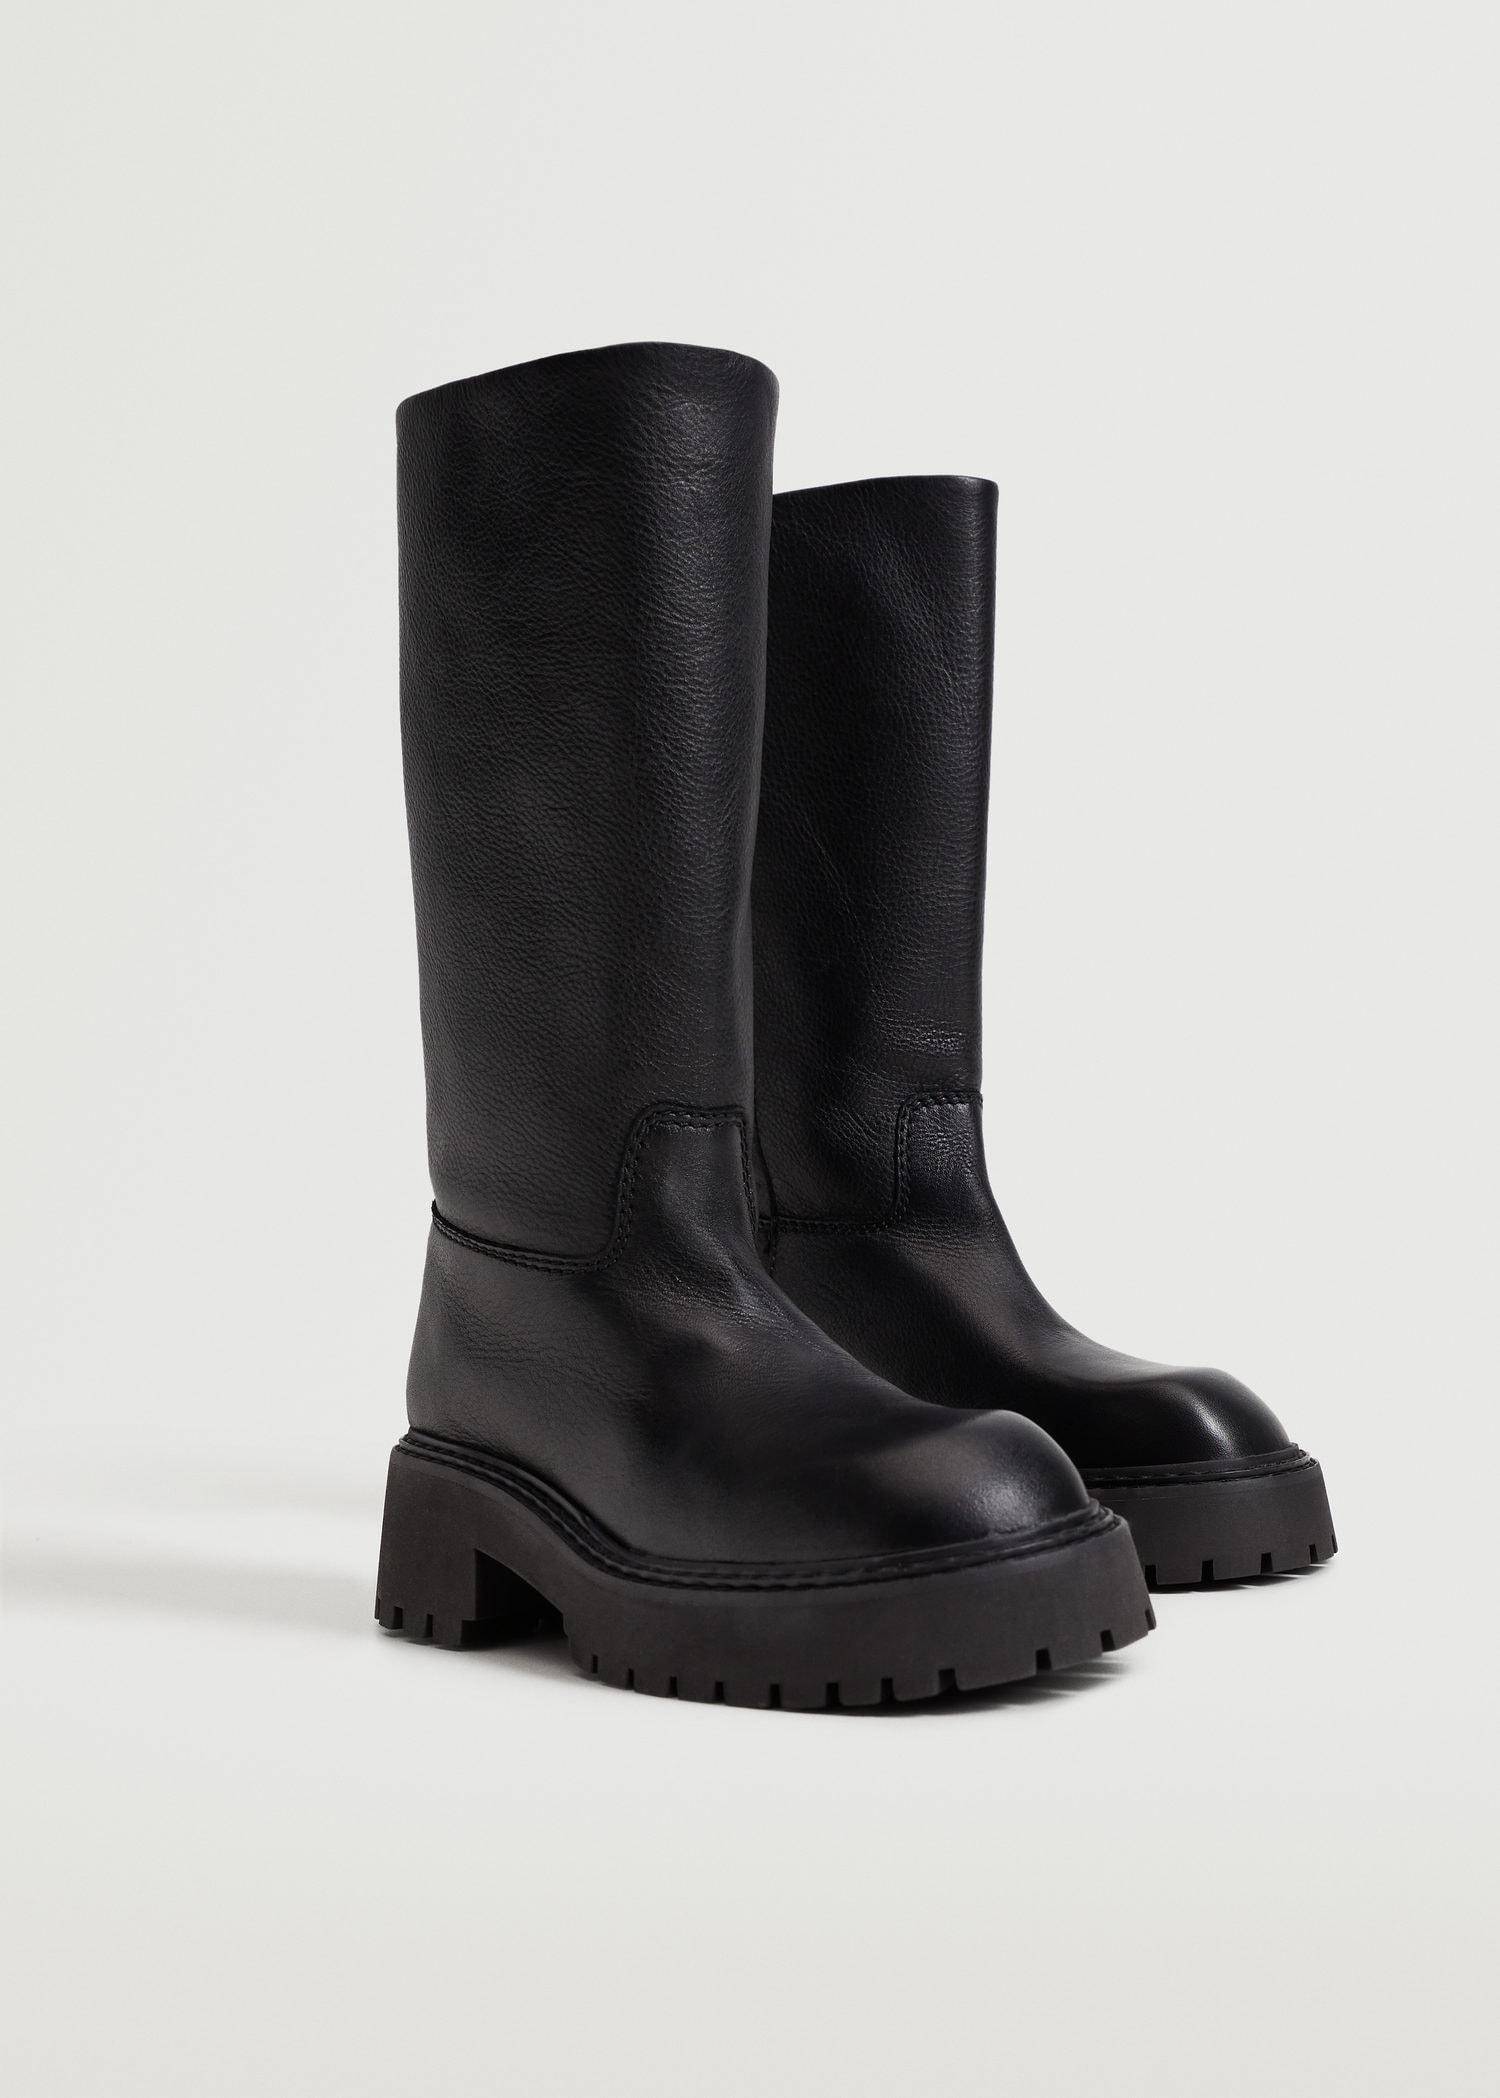 Leather boots with tall leg